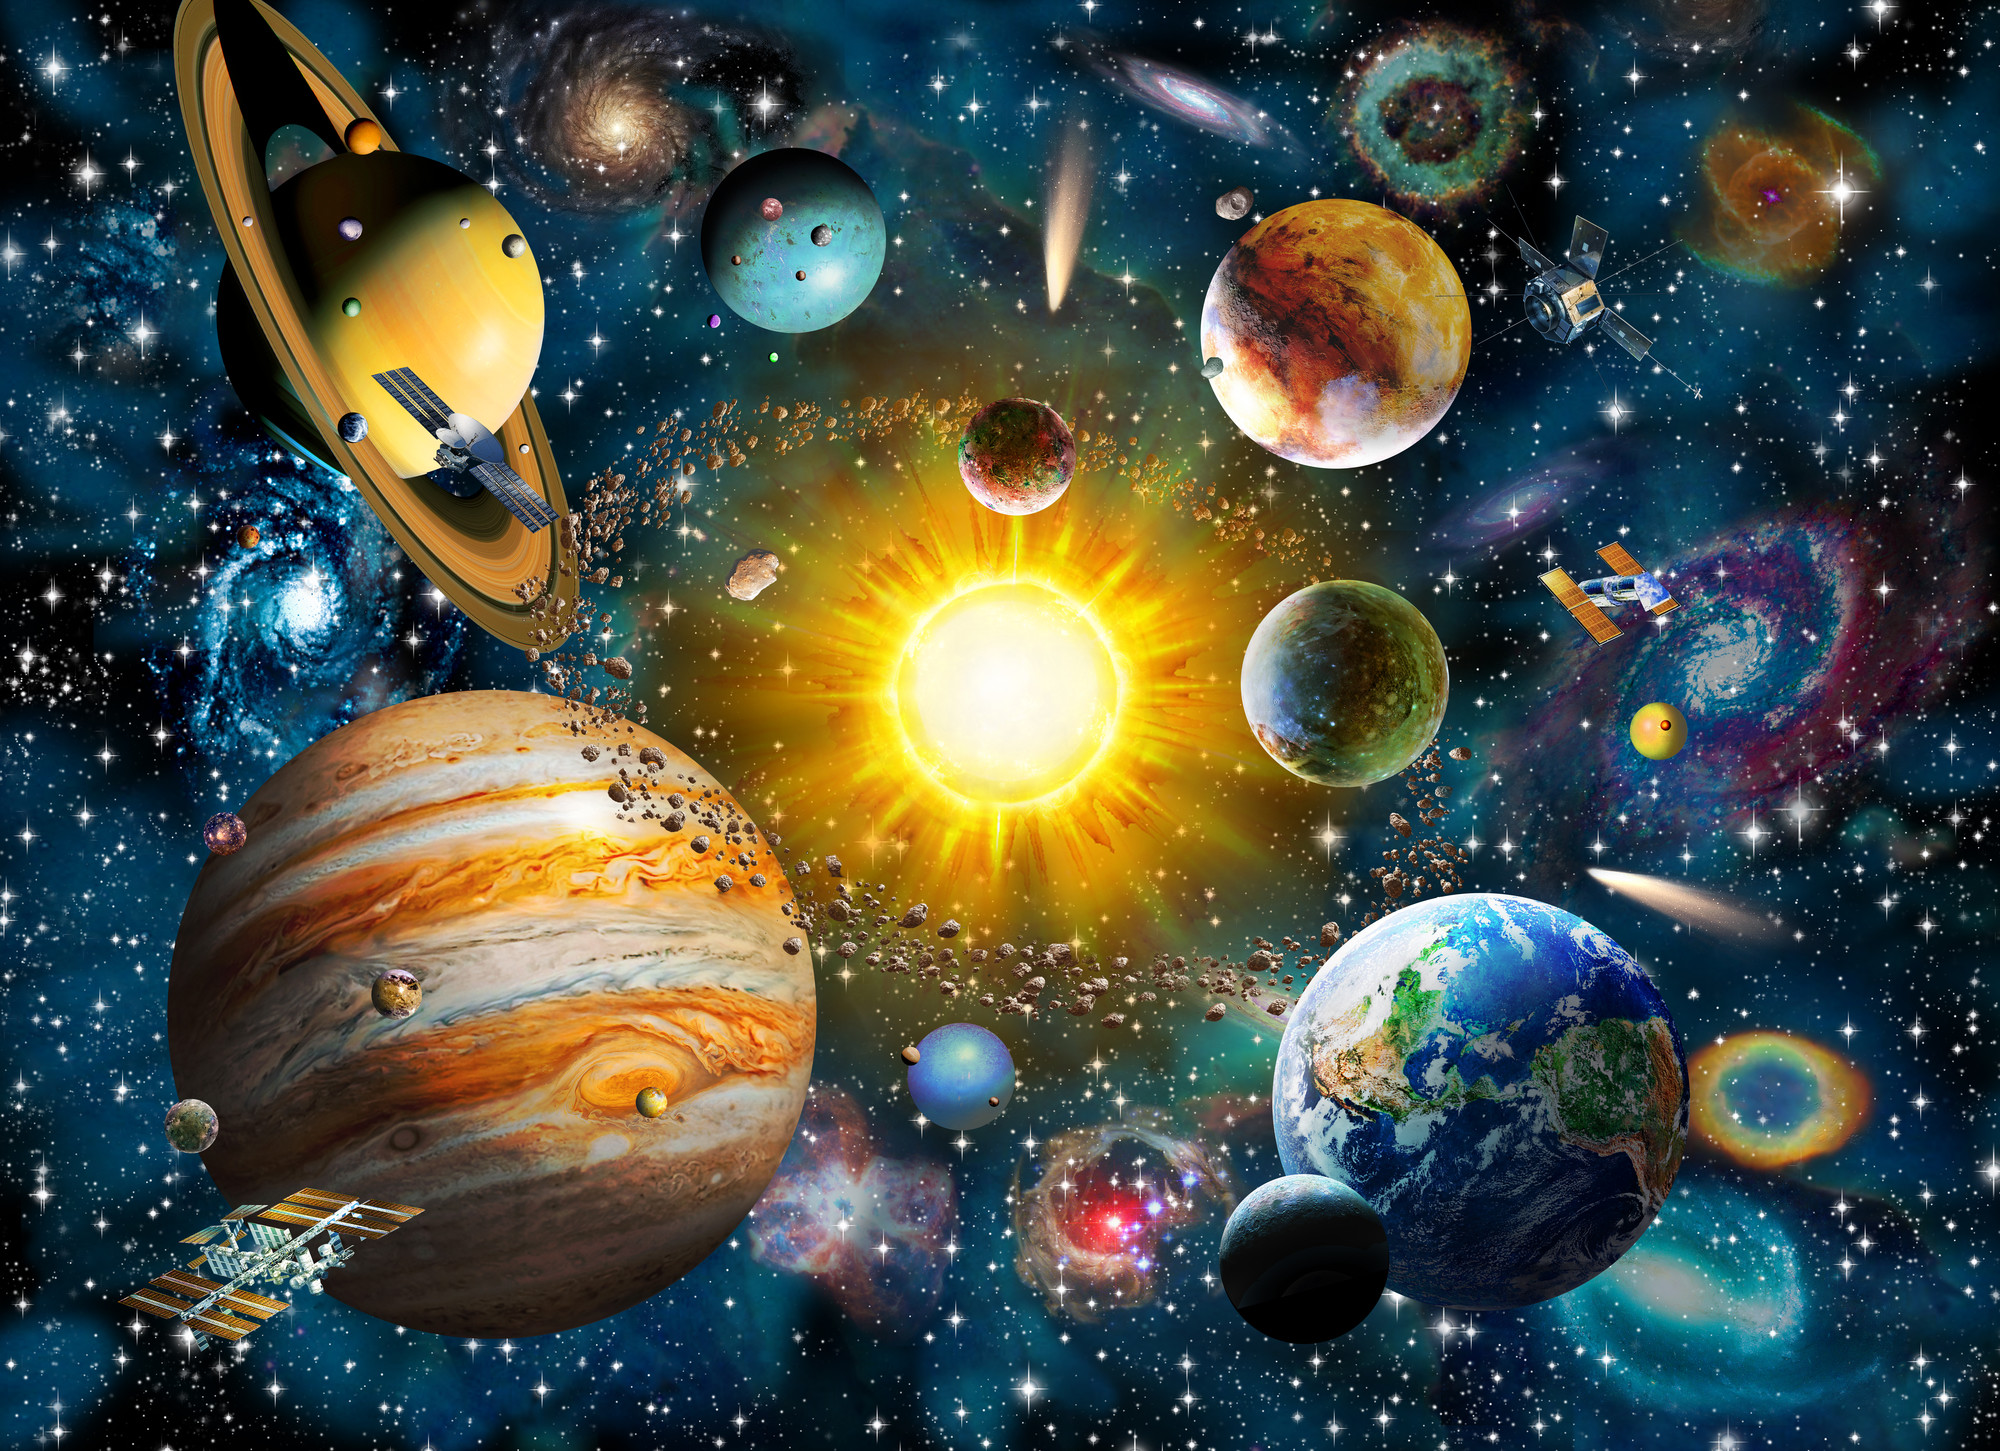 Solar system wallpaper 72 images - Space solar system wallpaper ...